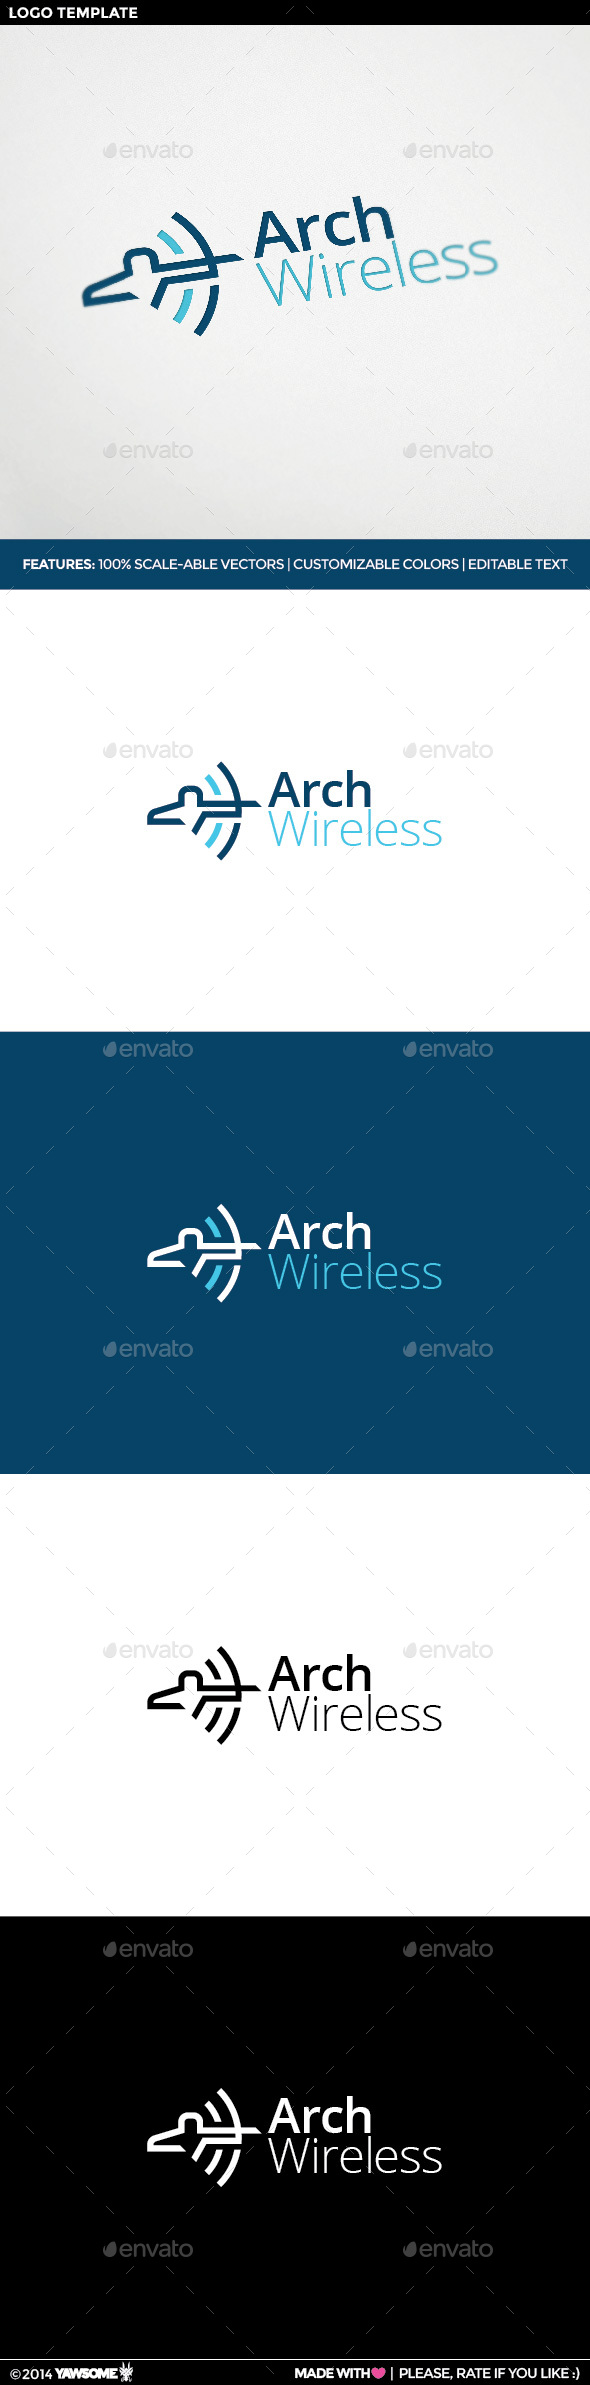 Arch Wireless Logo - Logo Templates